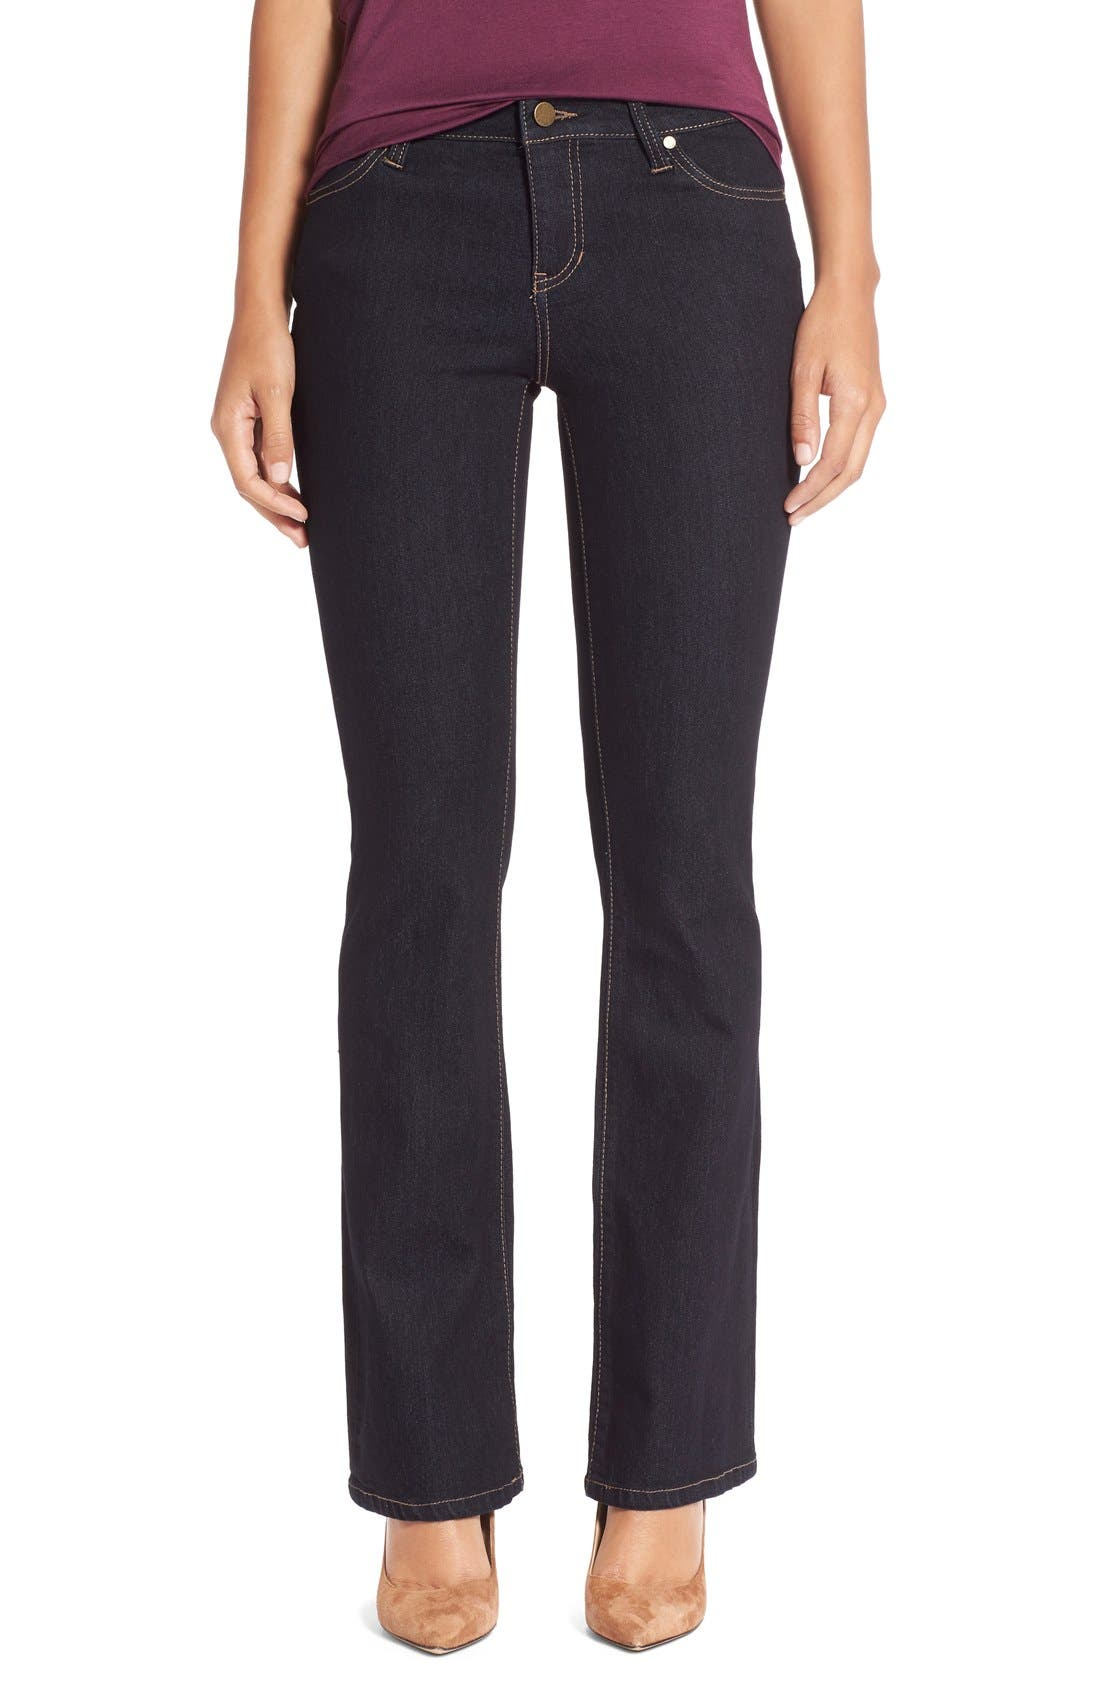 LIVERPOOL JEANS COMPANY LiverpoolJeans Company 'Lucy' Stretch